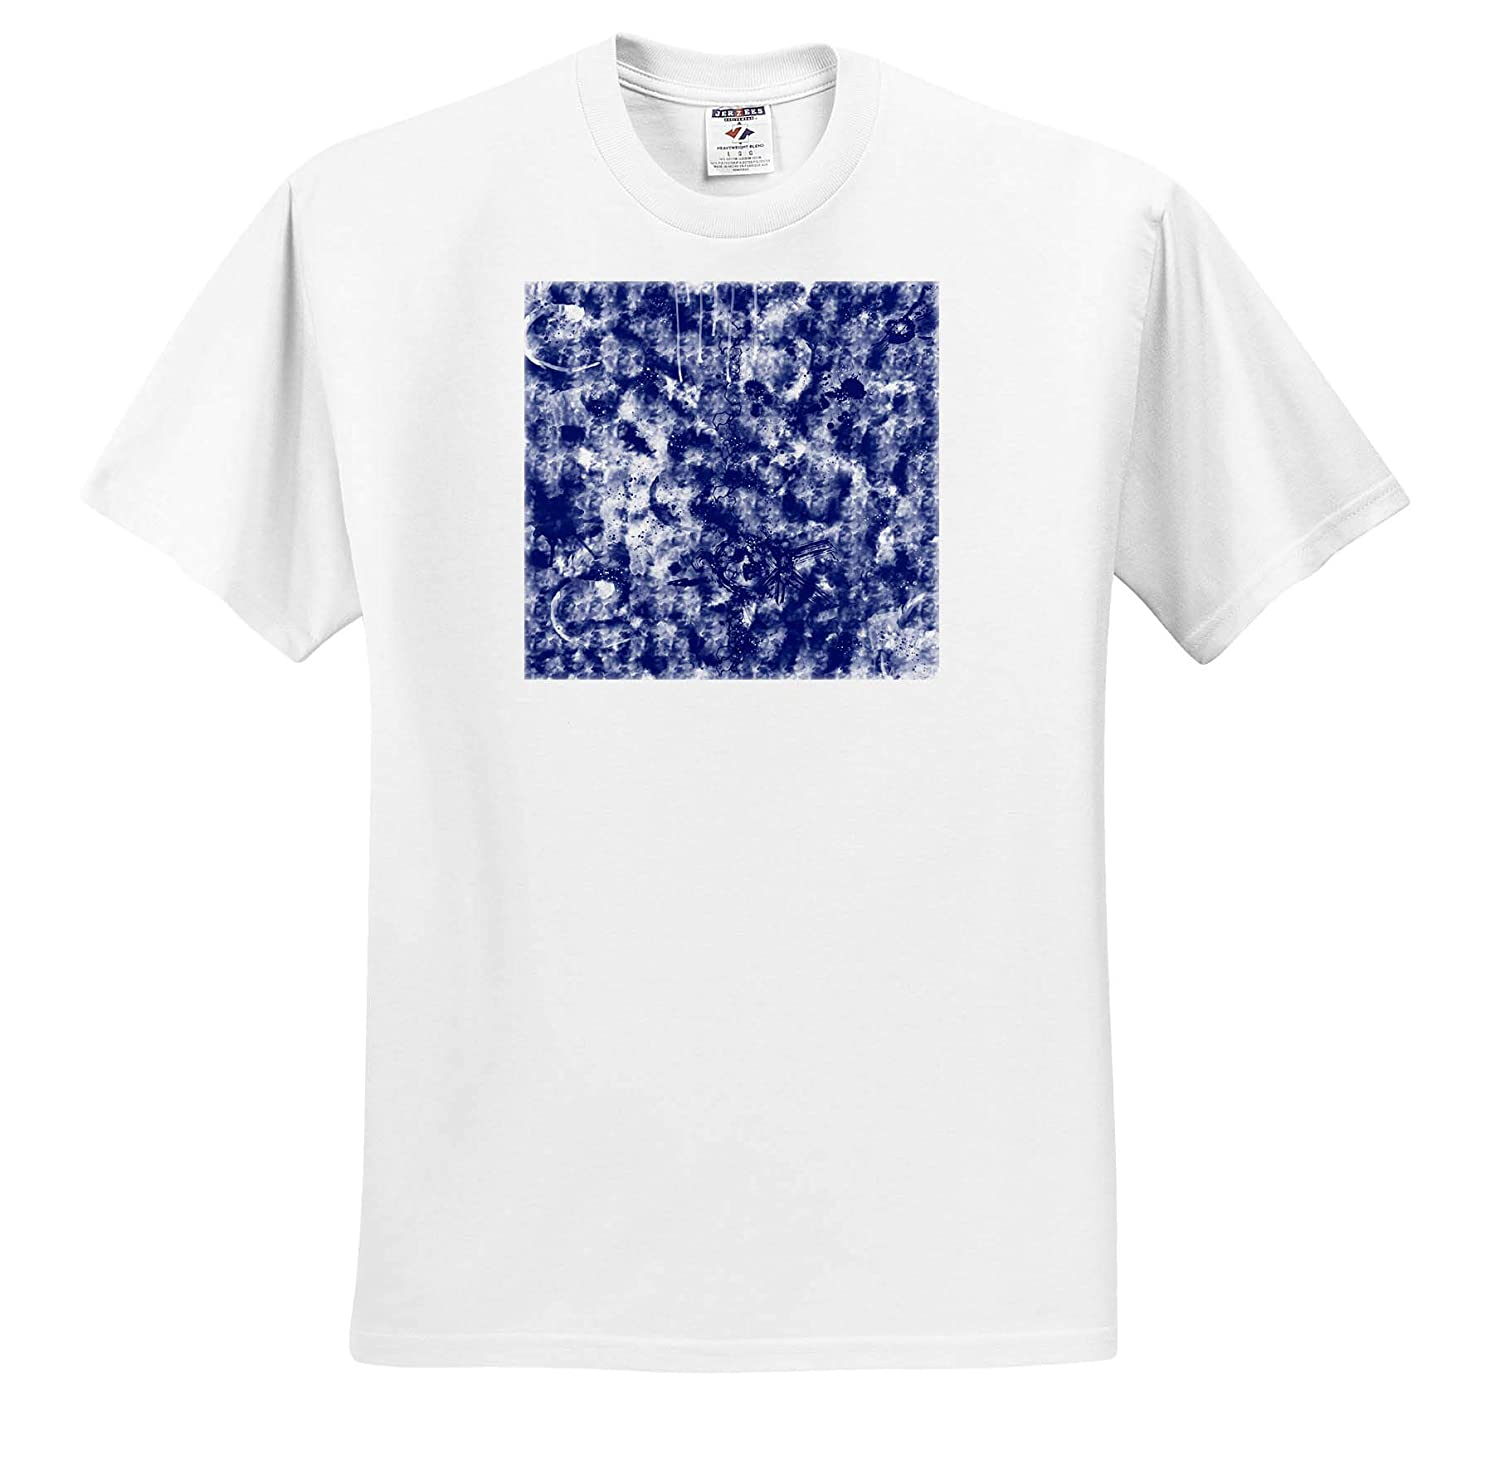 3dRose Digital Art by Brandi Untz Blue and White Abstract Painting Adult T-Shirt XL Blue White Abstract ts/_309435